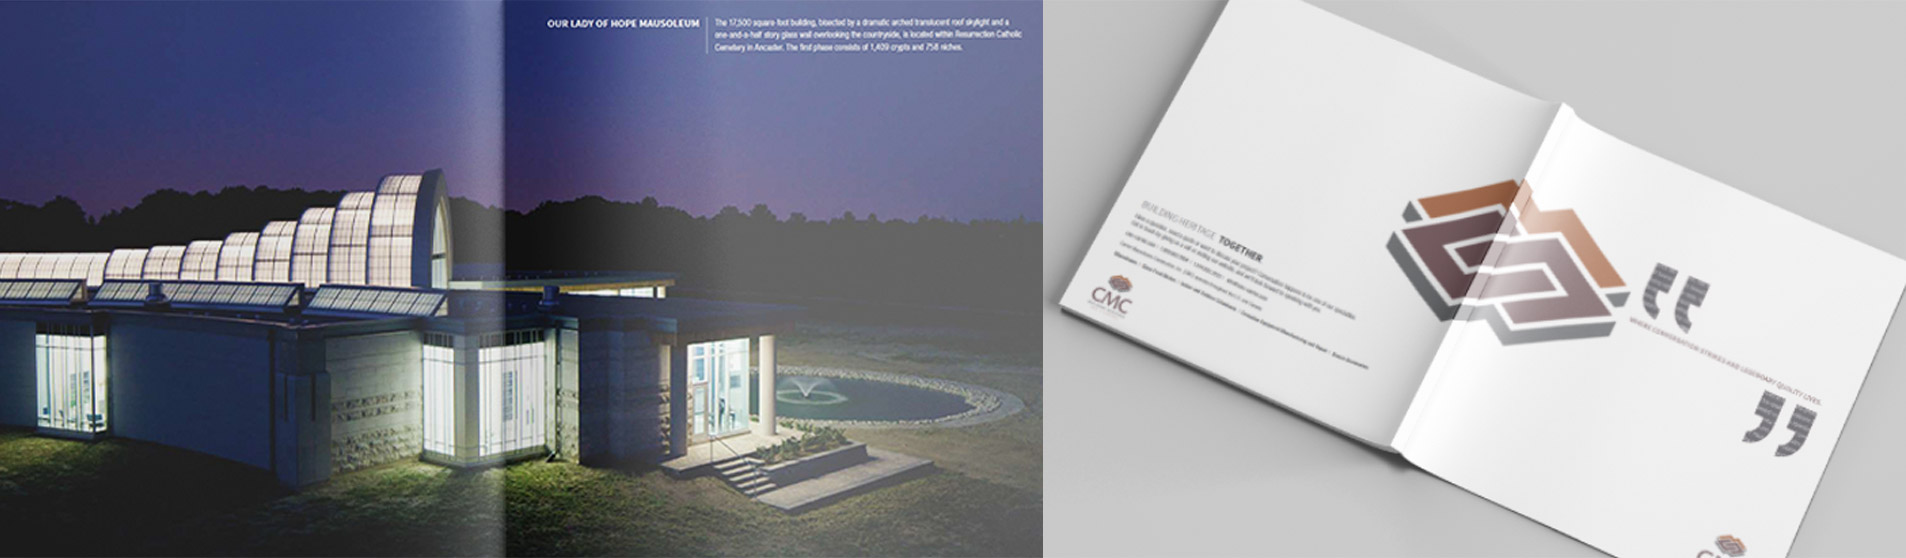 print design project for cmc